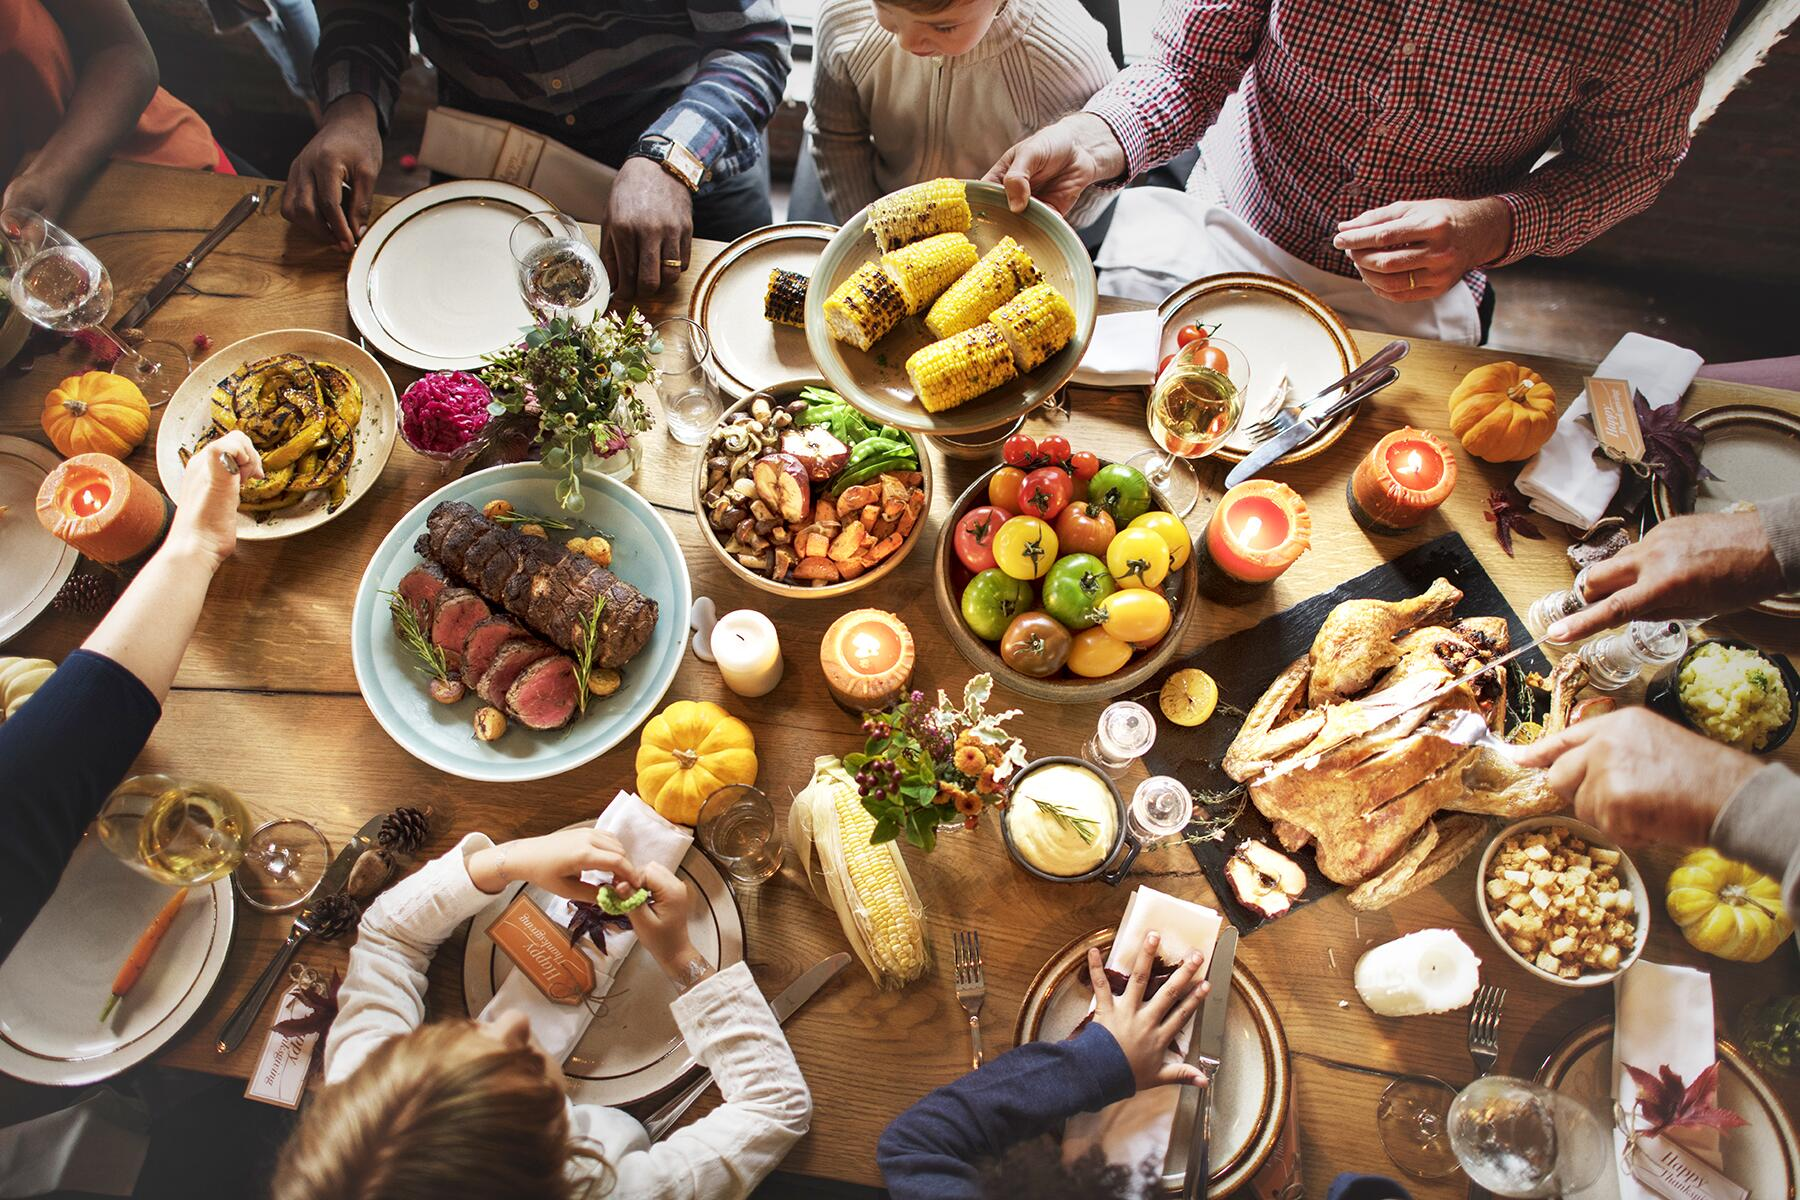 7 Unique Thanksgiving Recipes to Spice Up Your Turkey Day